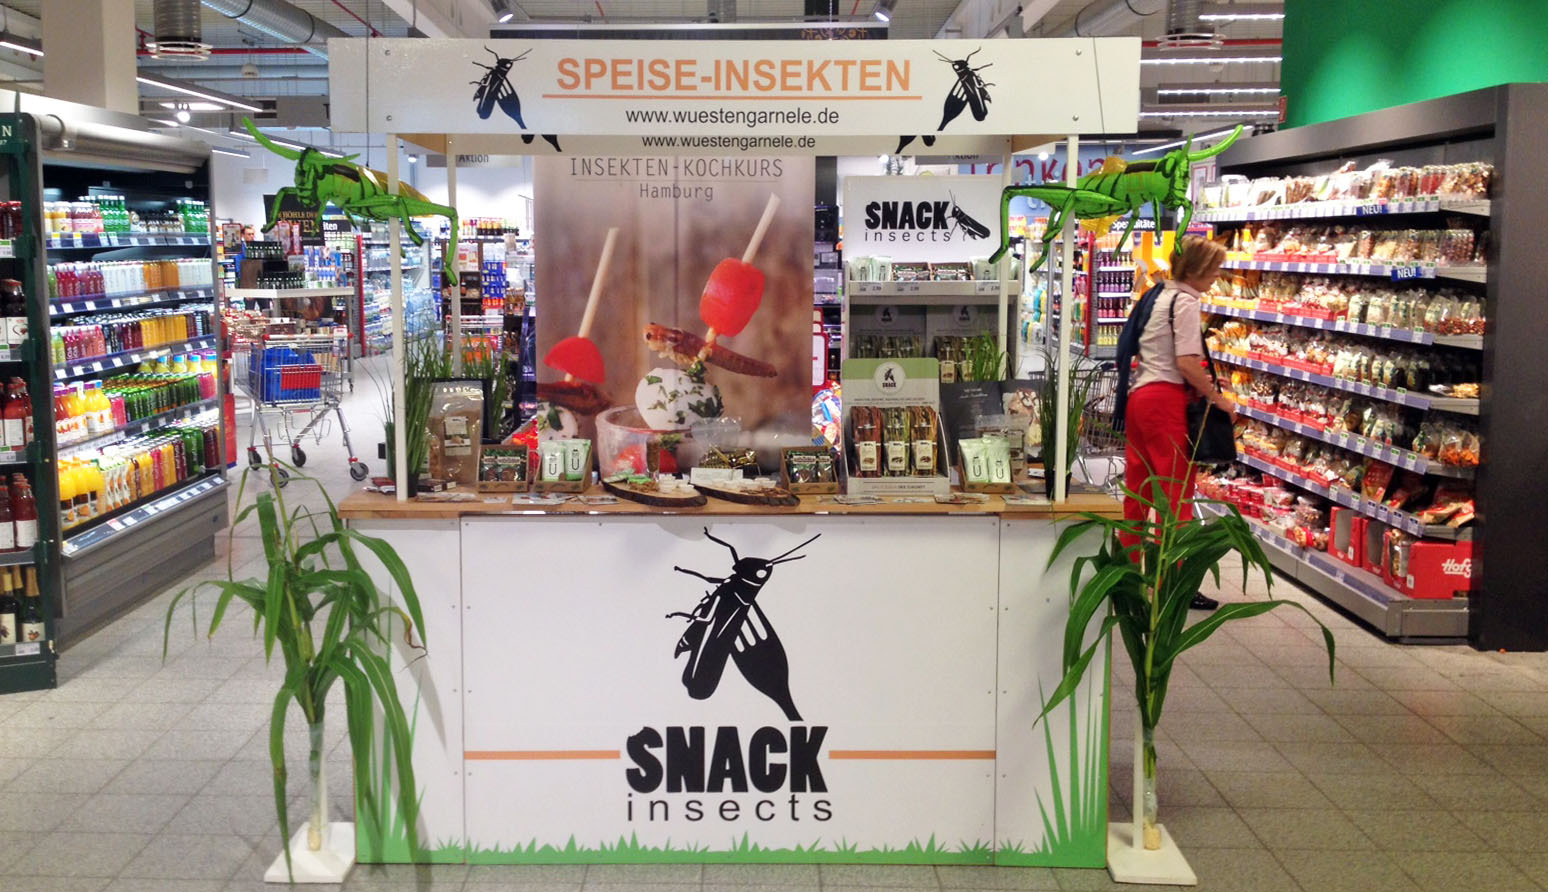 Snack-Insects_essbare_INsekten_zum_Verkosten_-_Supermarkt_Aktion_in_Deutschland